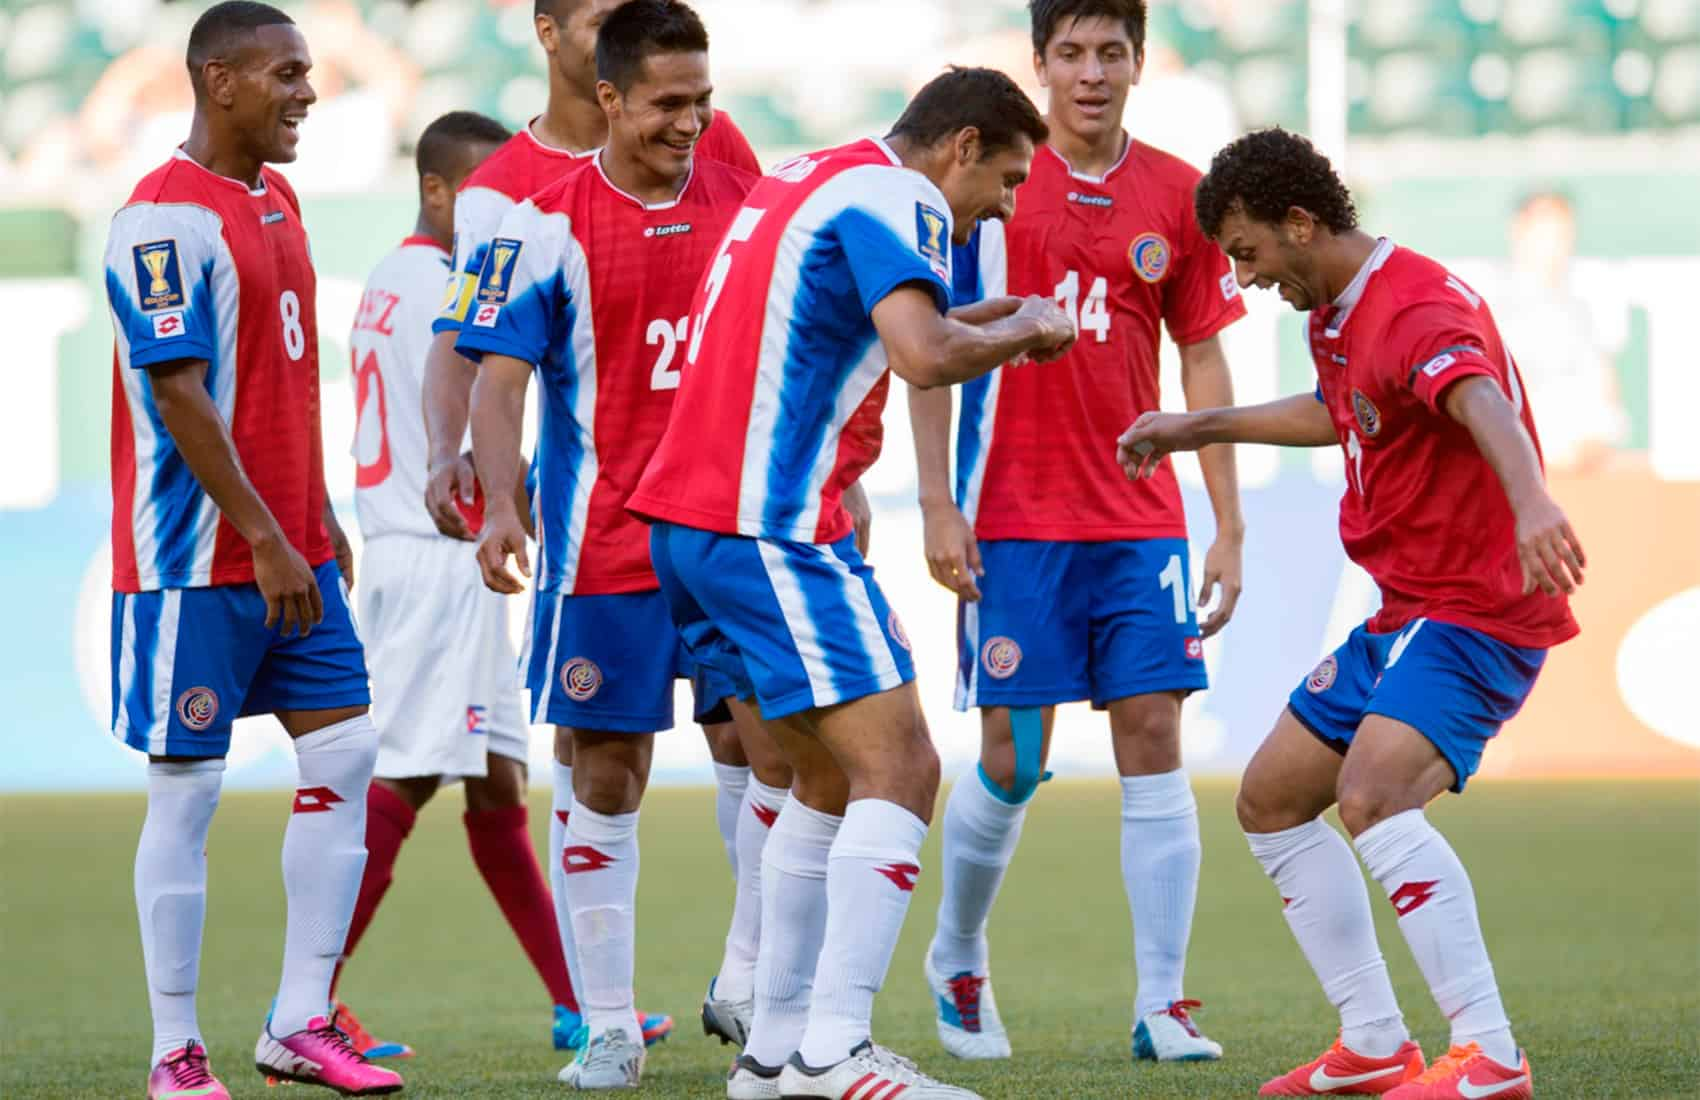 Costa Rica National Team 2014